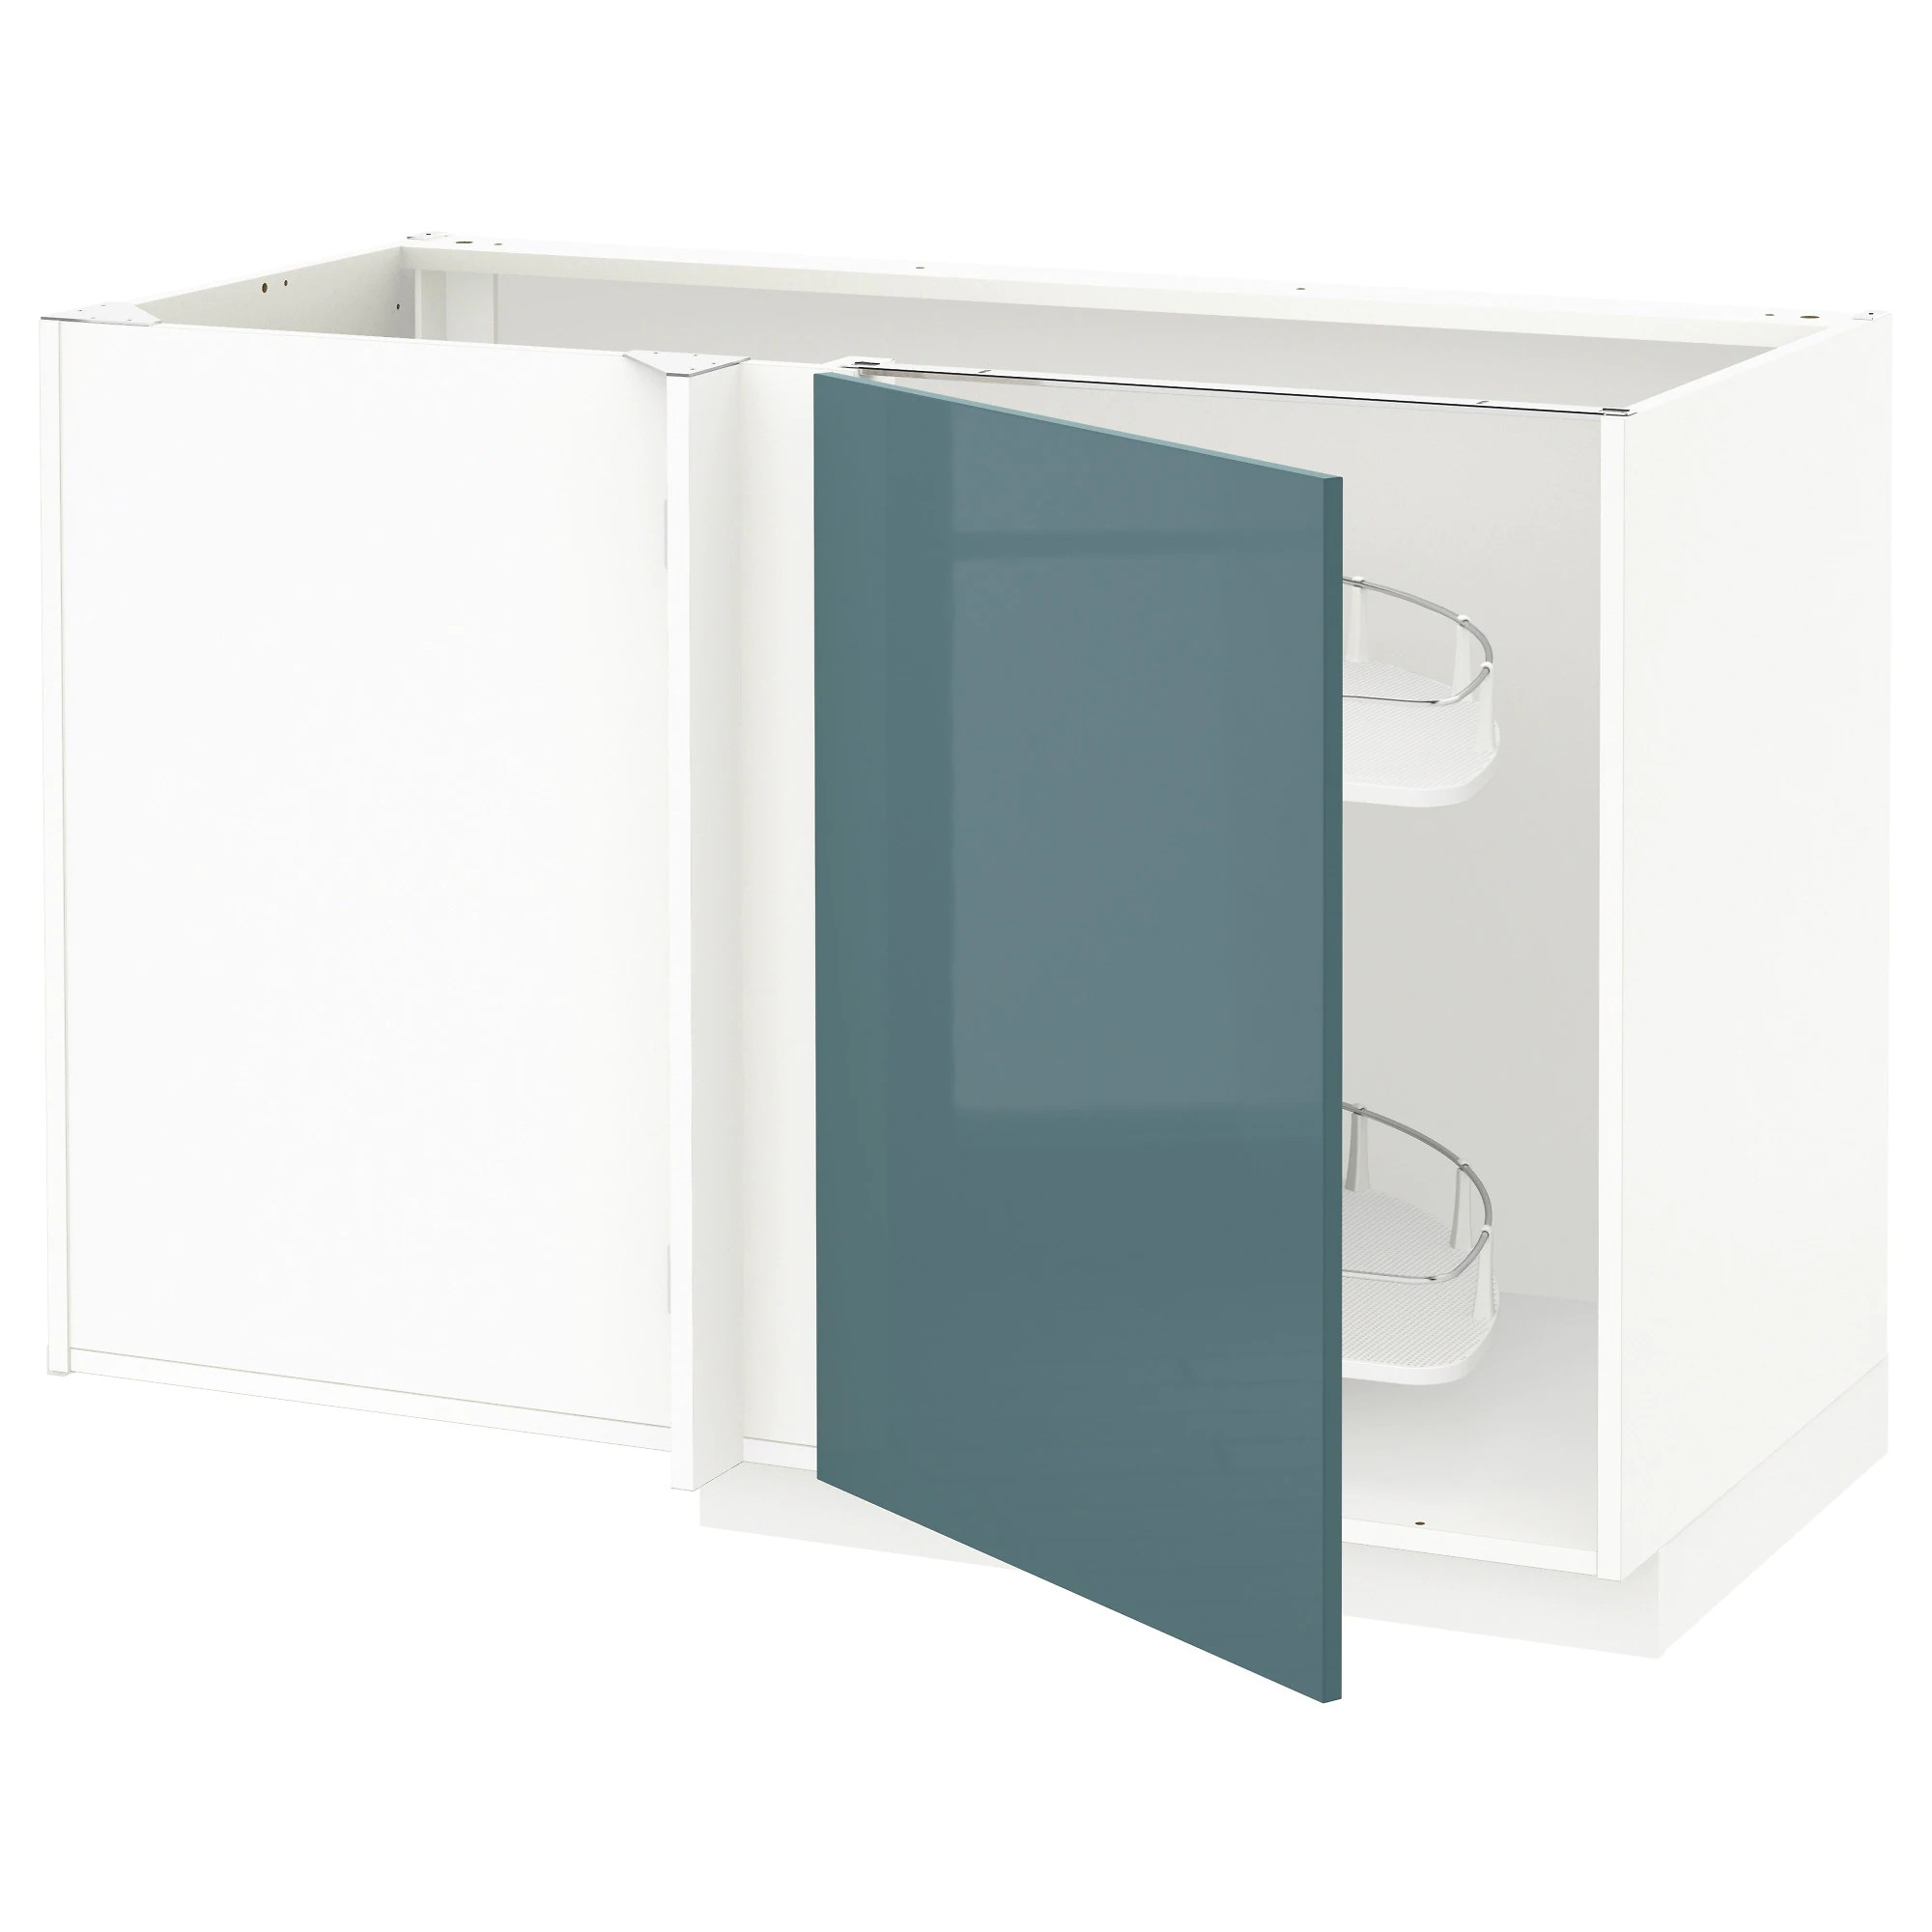 Cucina Ikea Tingsryd Jarsta Metod Corner Base Cab W Pull Out Fitting White Kallarp Grey Turquoise